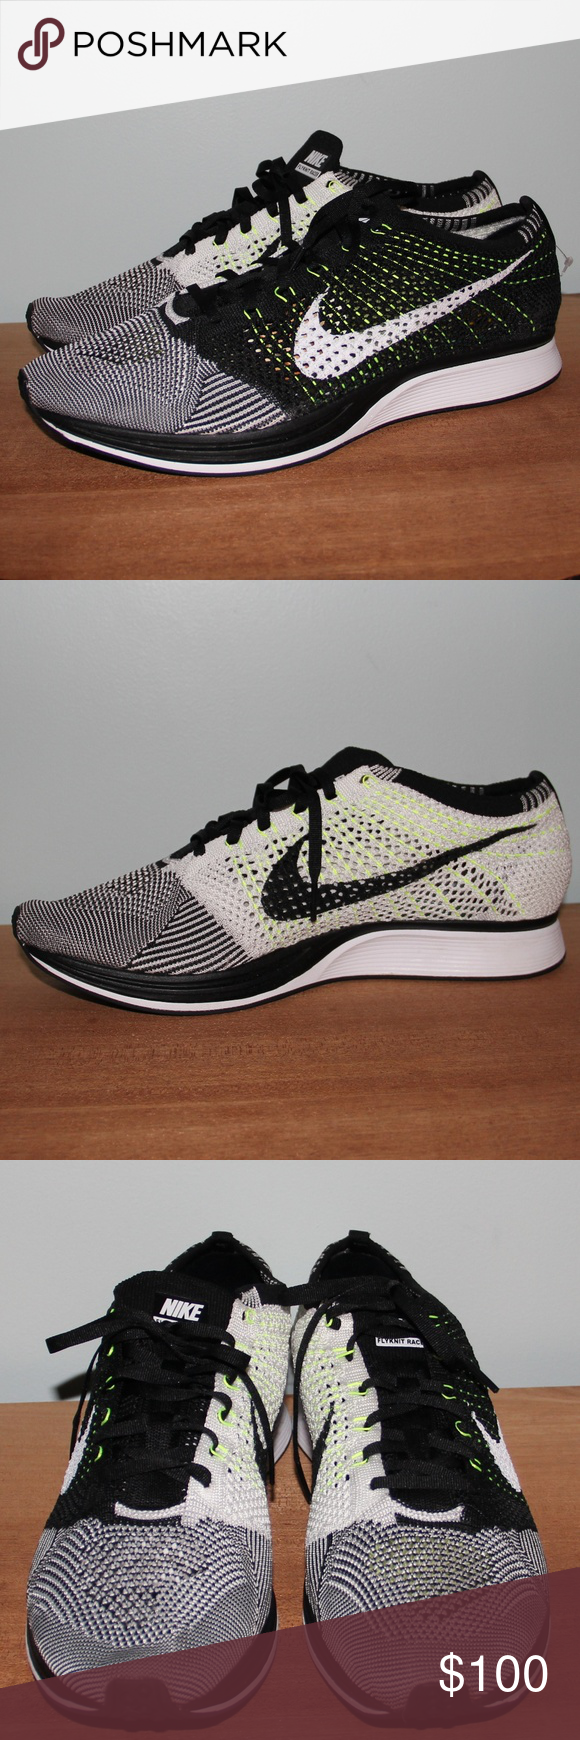 superior quality 3befc 79a92 NWOB Nike Flyknit Racer Oreo Volt Running Shoe 13 Brand new without box  Men s size 13